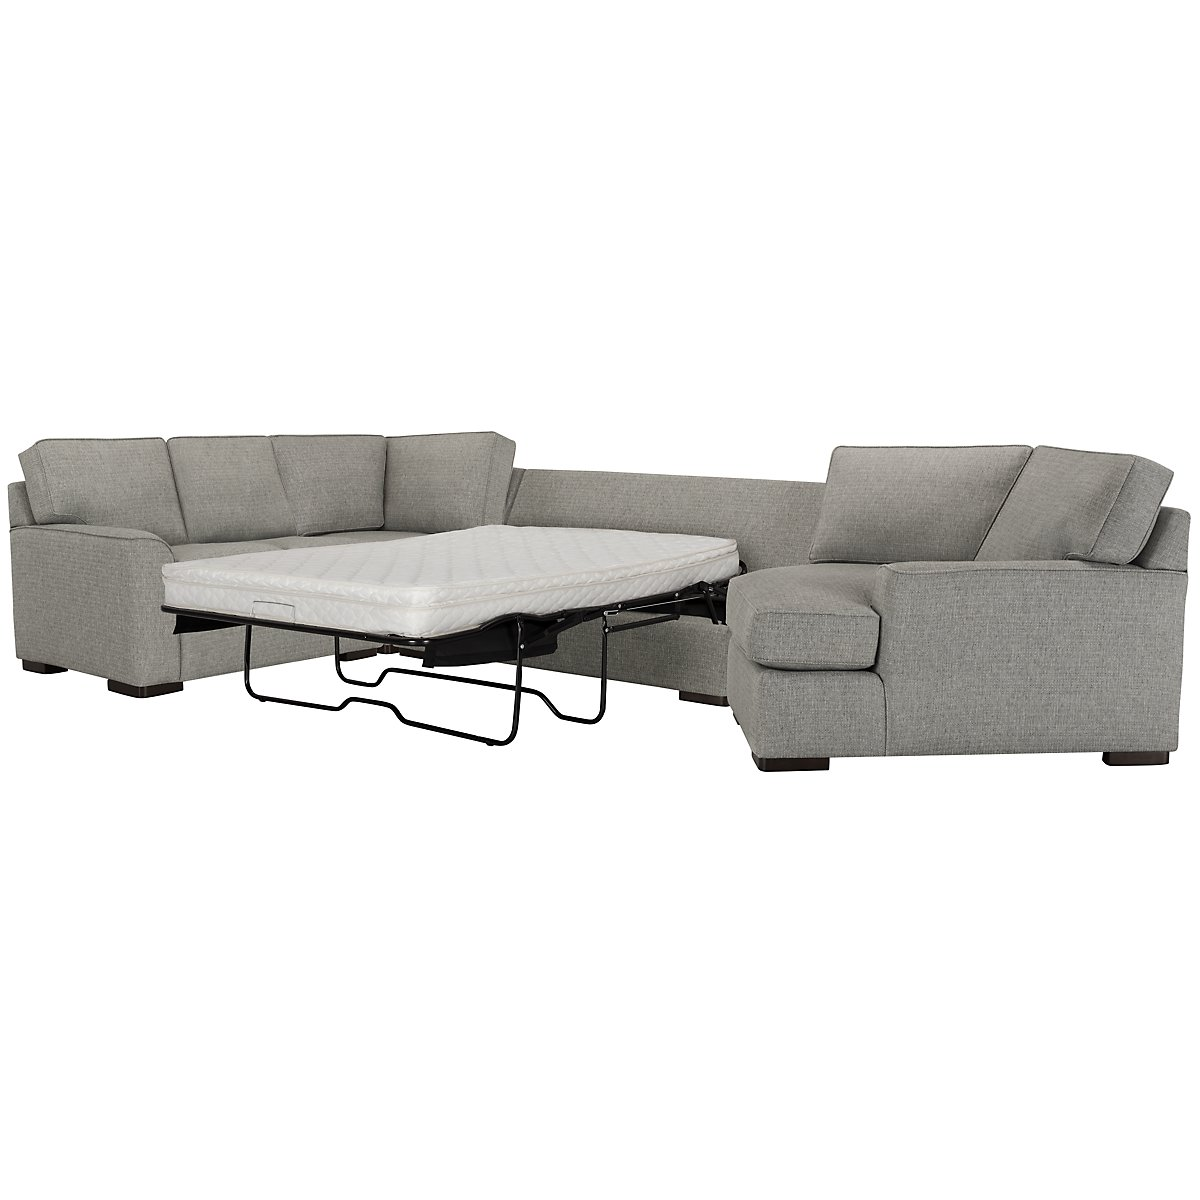 Austin Gray Fabric Right Cuddler Innerspring Sleeper Sectional